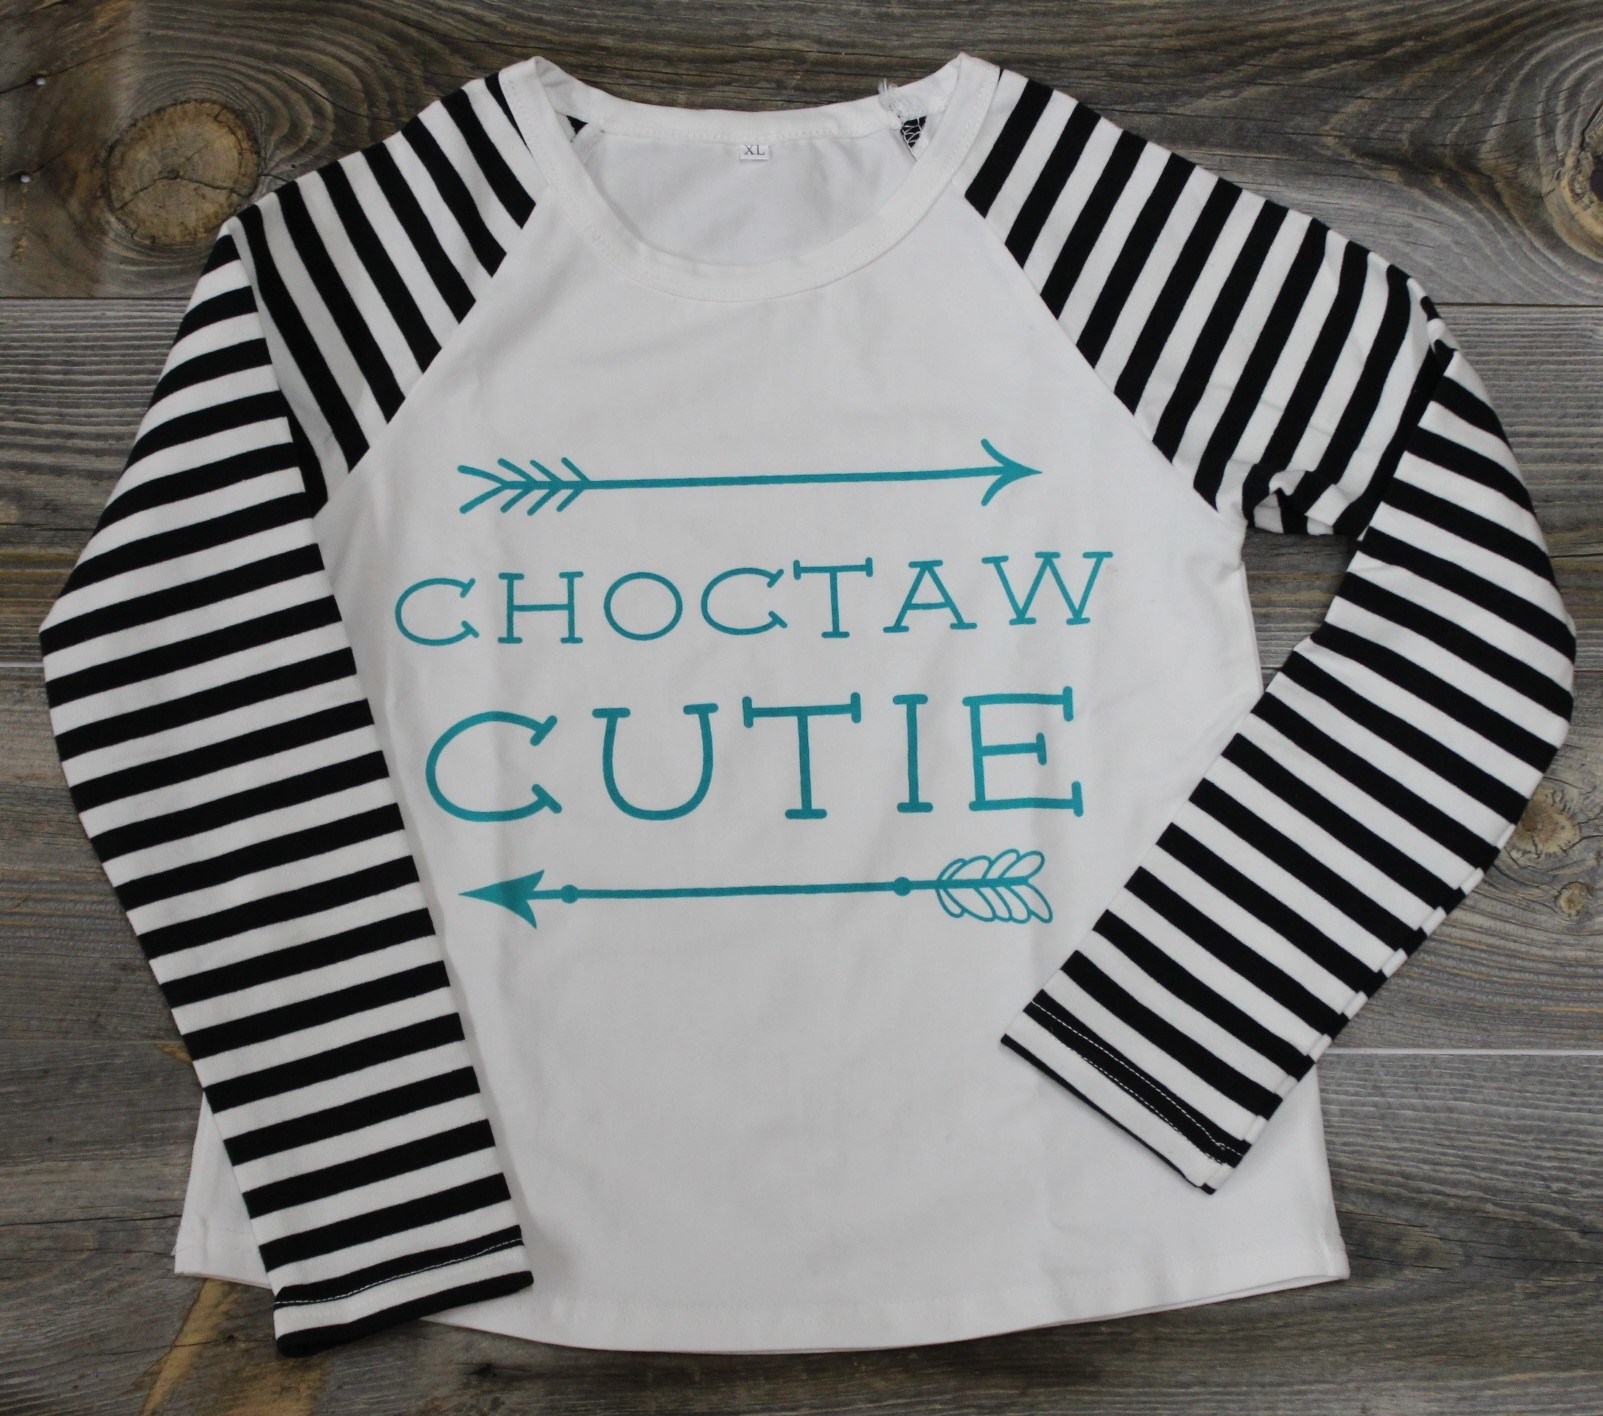 Choctaw Cutie Toddler Tees